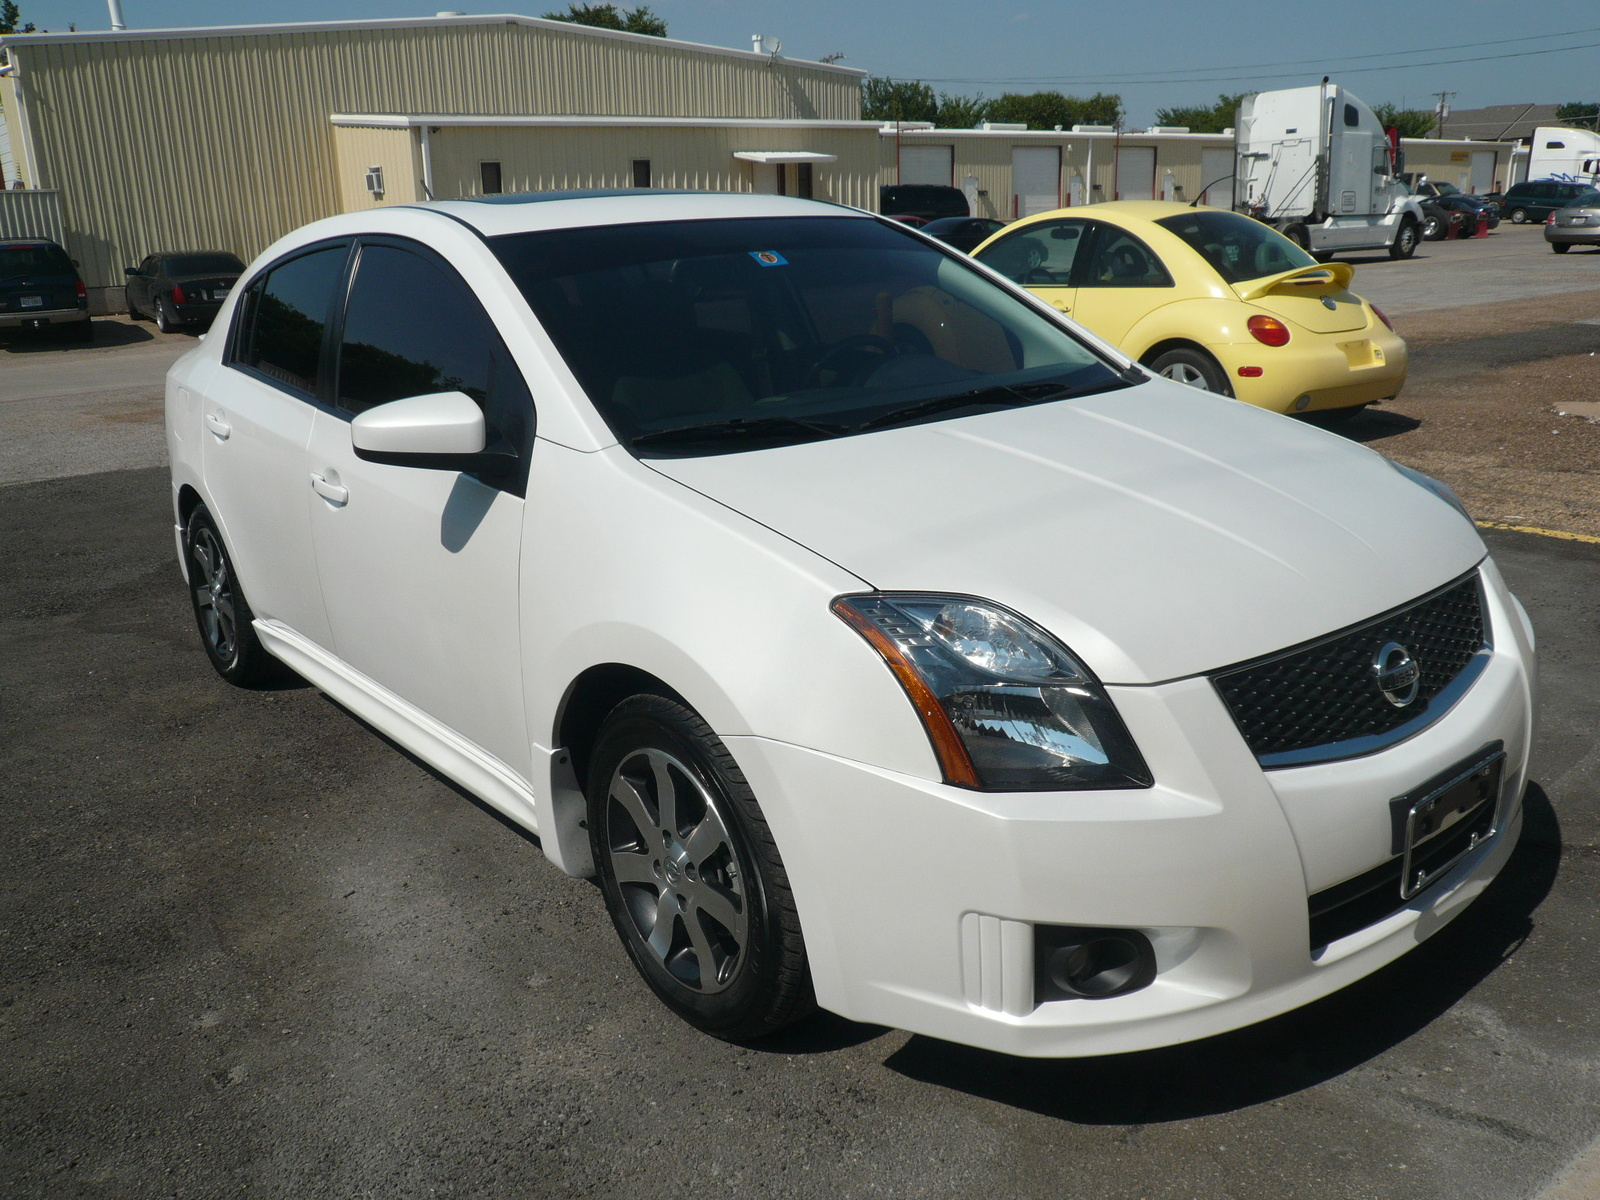 2012 nissan sentra review ratings specs prices and photos html autos weblog. Black Bedroom Furniture Sets. Home Design Ideas